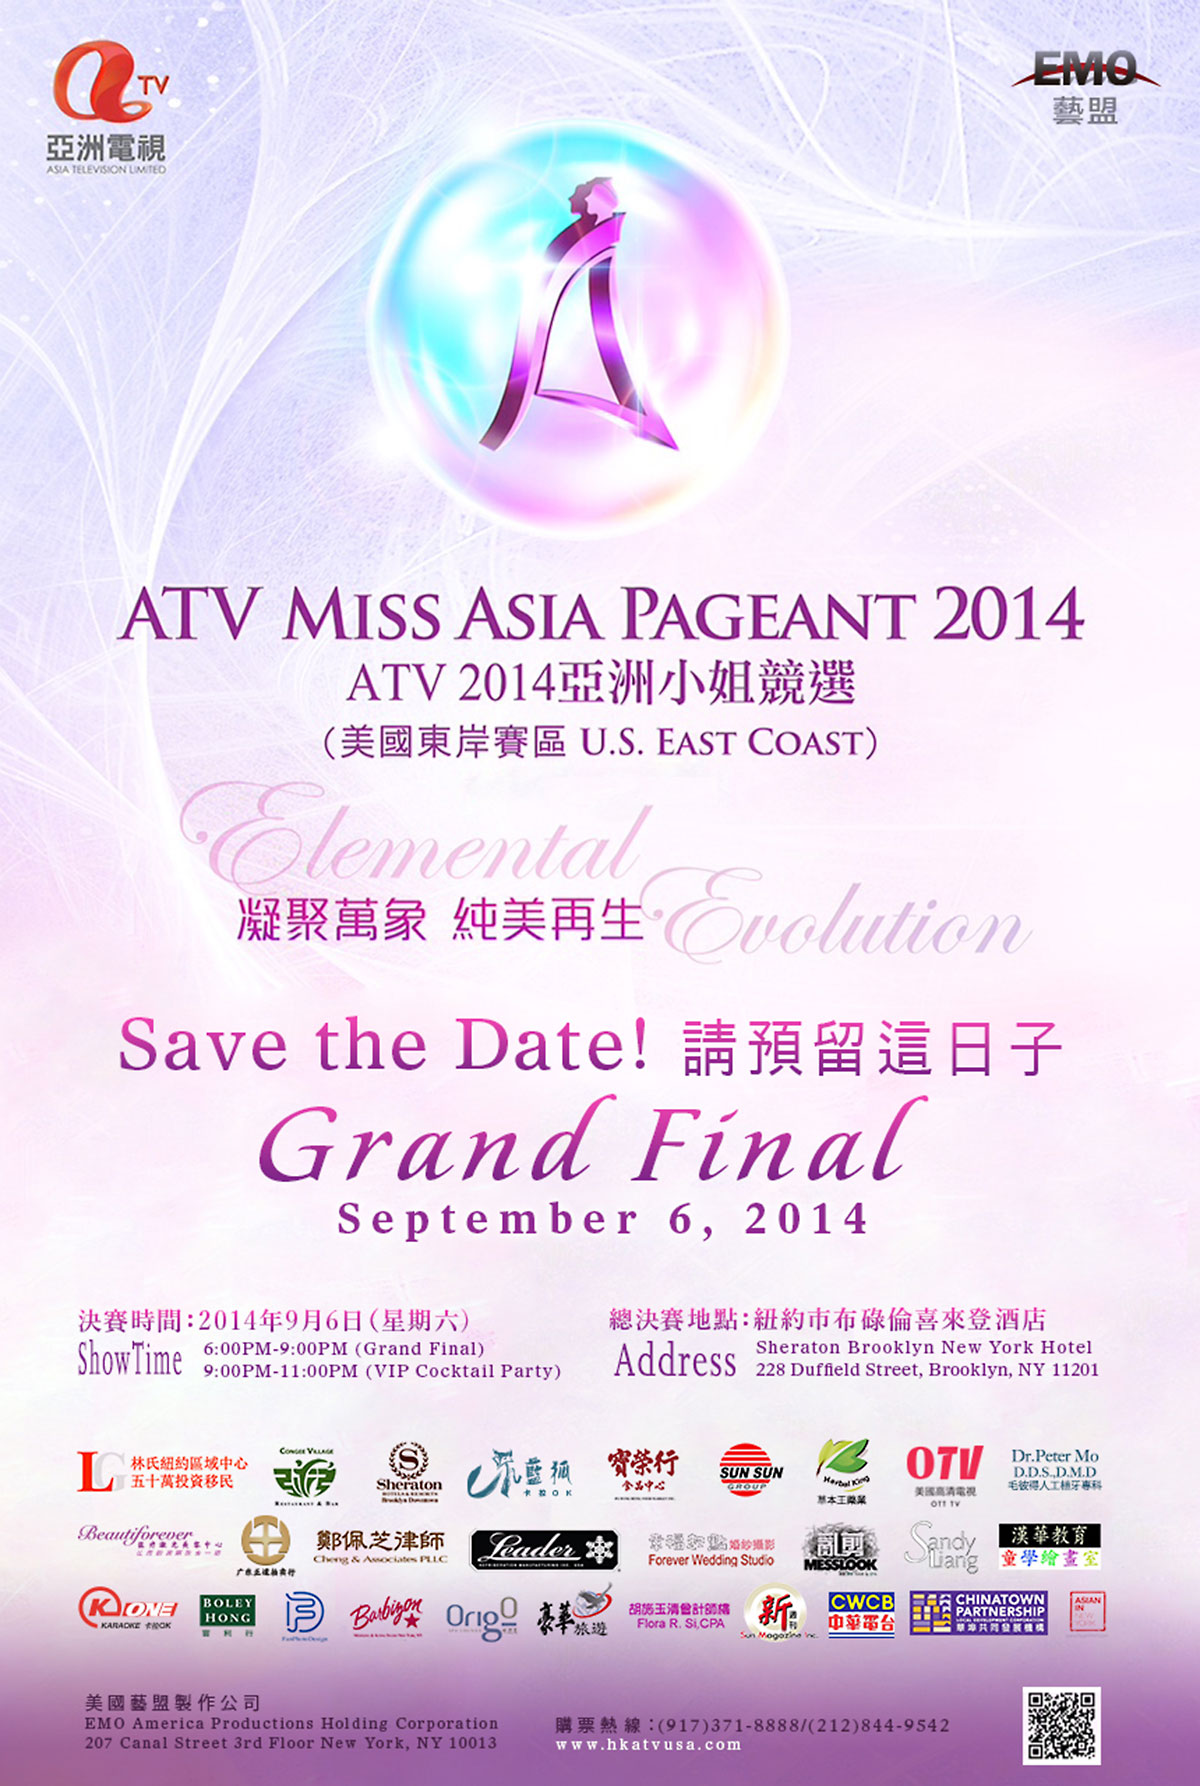 Miss Asia US East Coast Pageant Final 2014 Poster. Please unblock images to view.